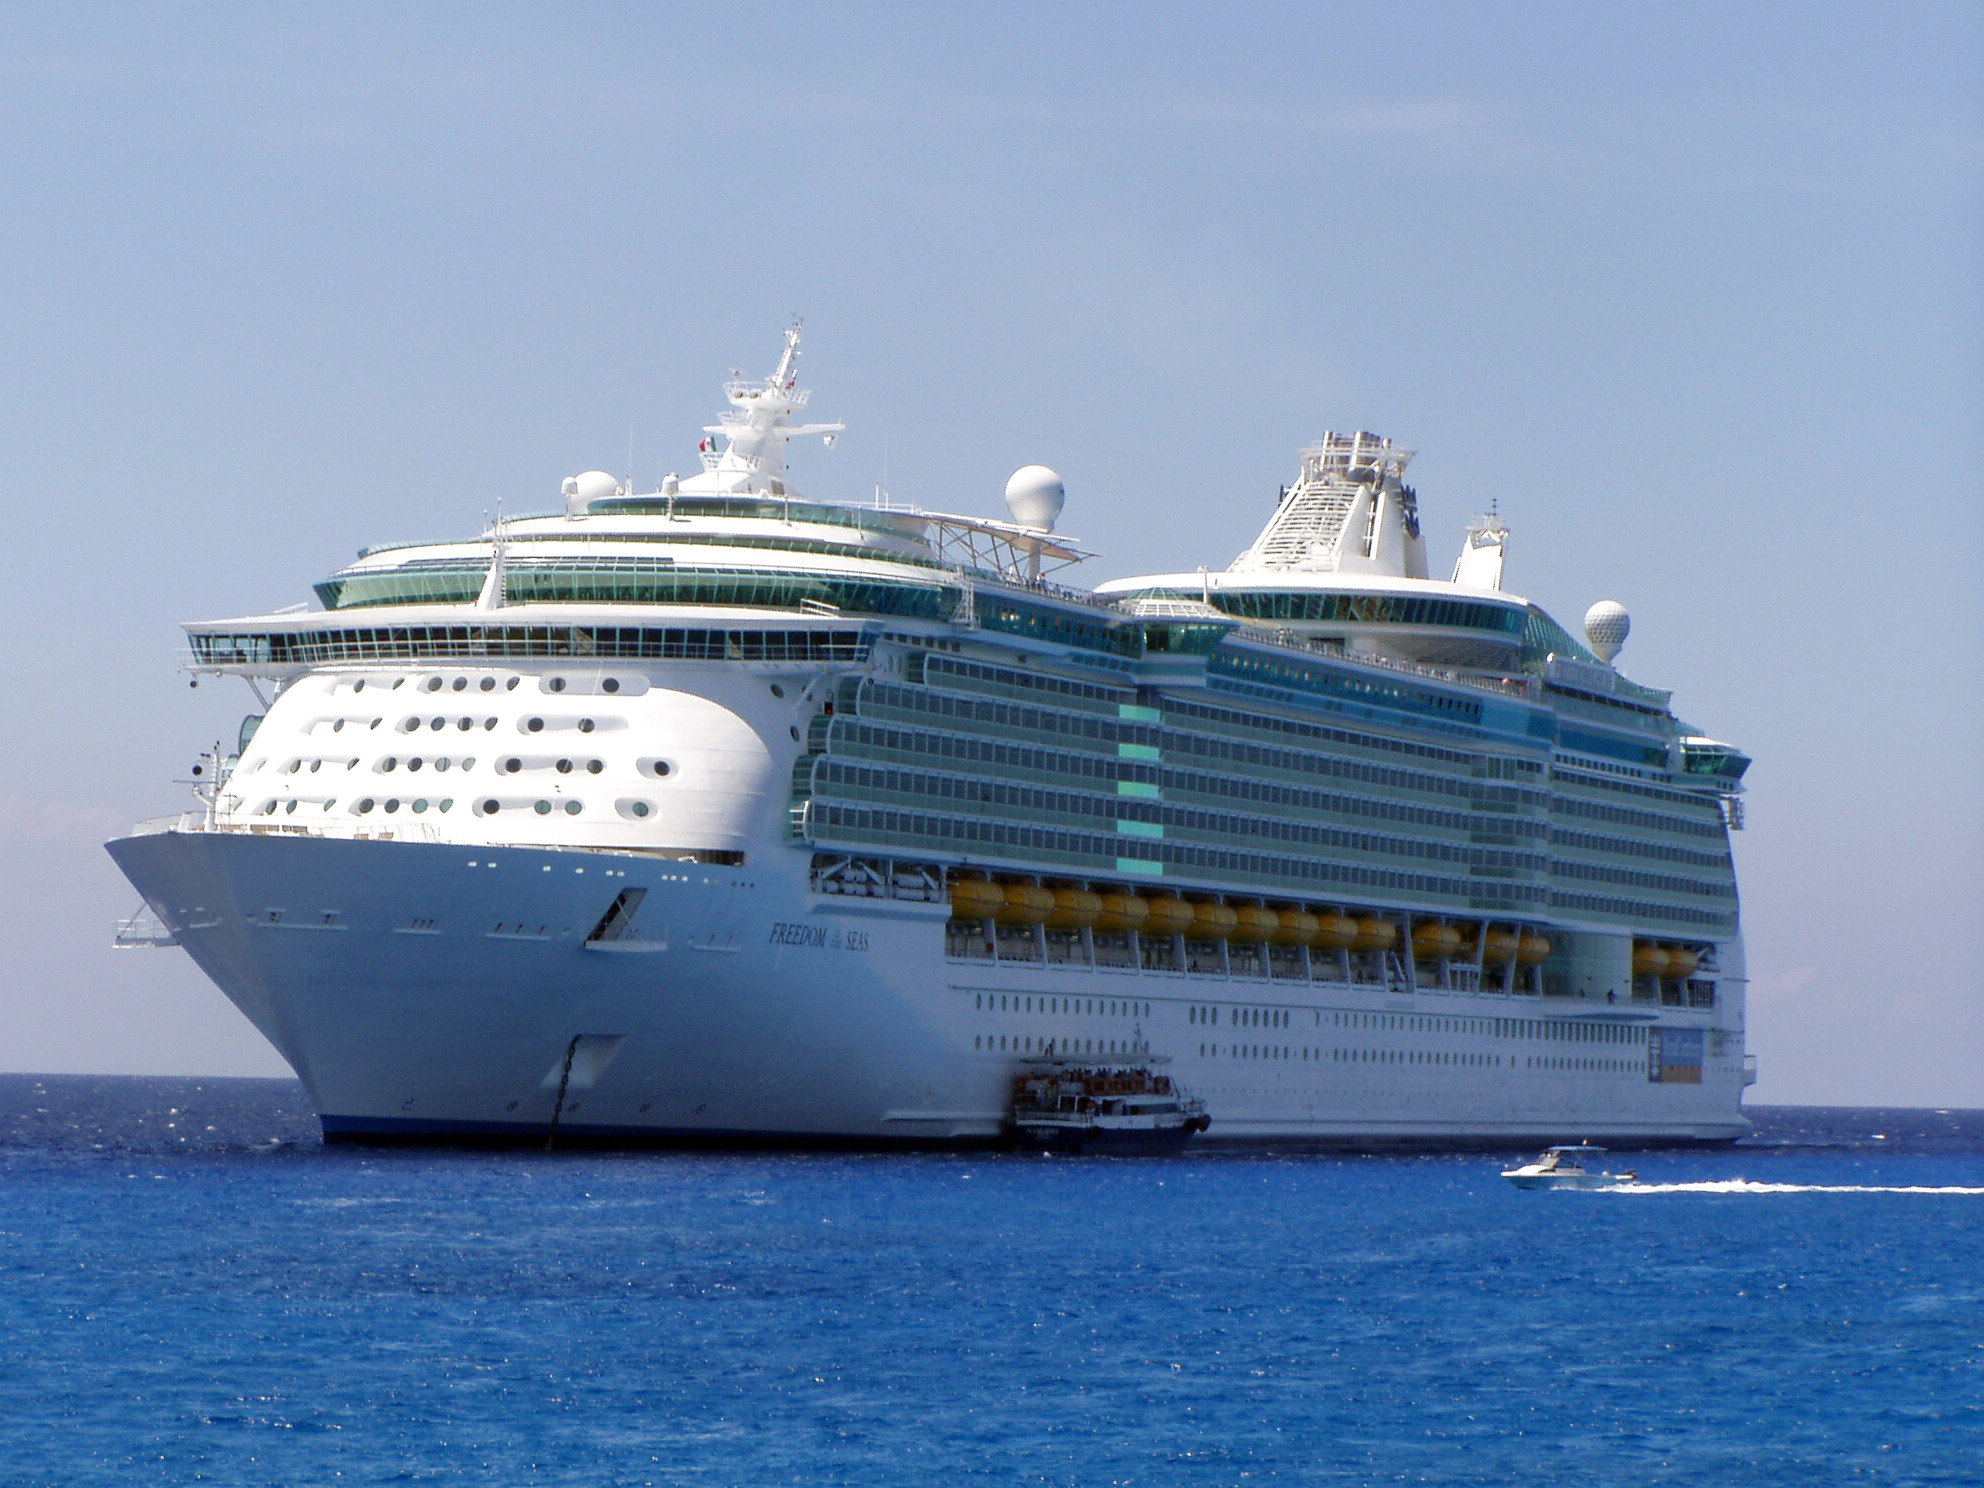 Grandfather Who Accidentally Dropped Toddler From Cruise Ship Could Face Charges